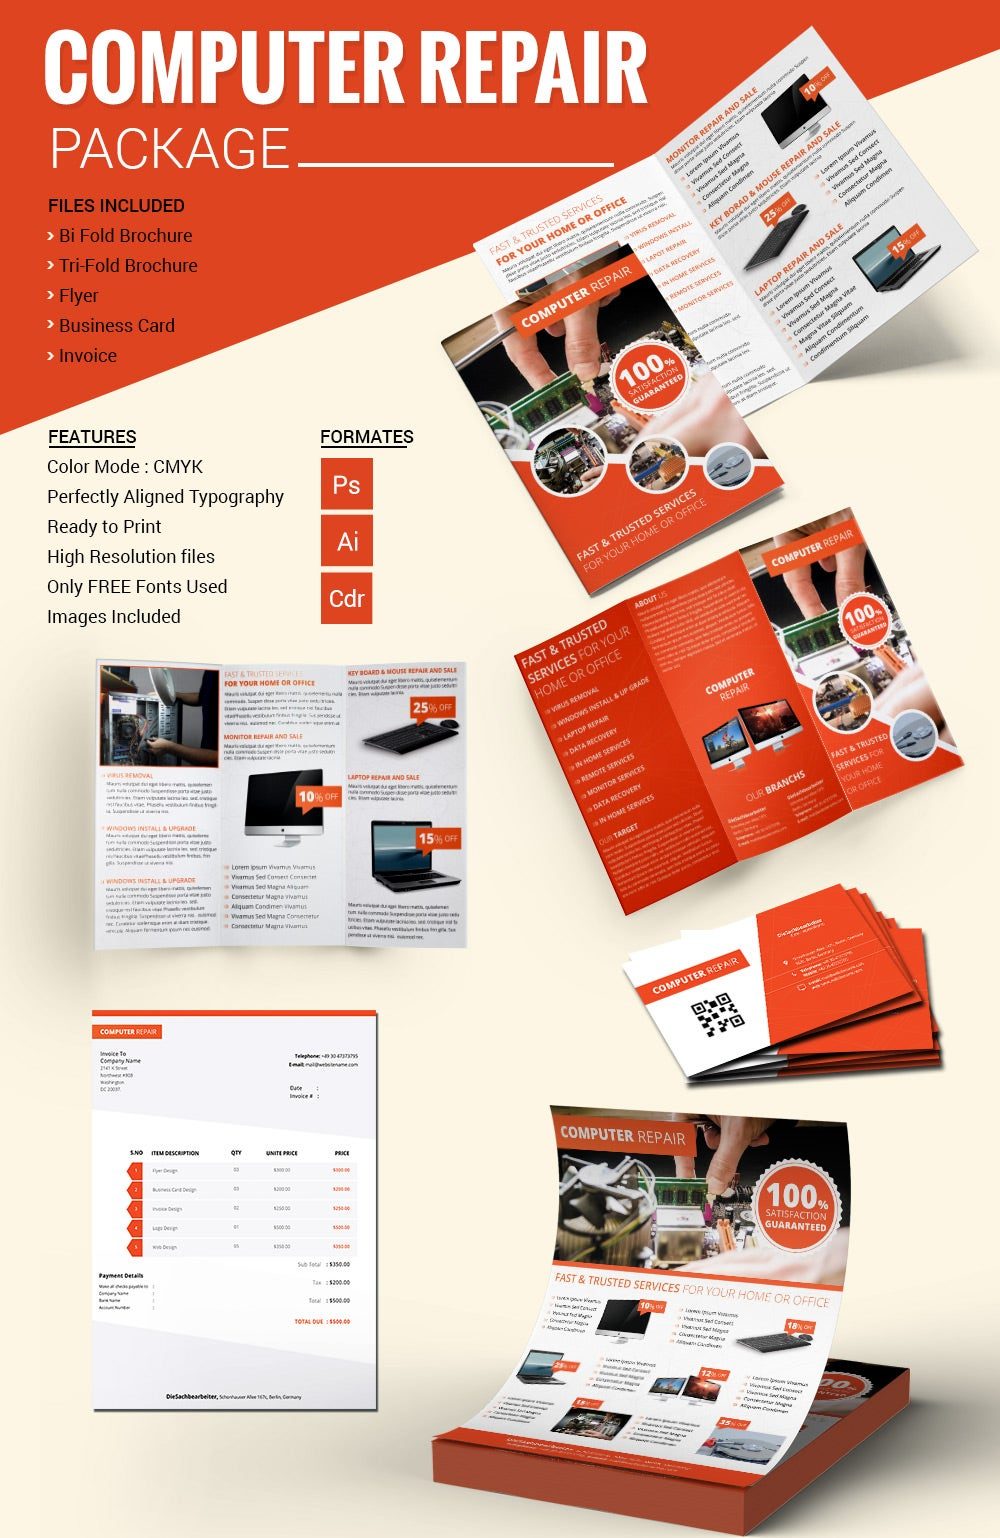 Computer Repair Flyer Template Novasatfmtk - Free marketing brochure templates